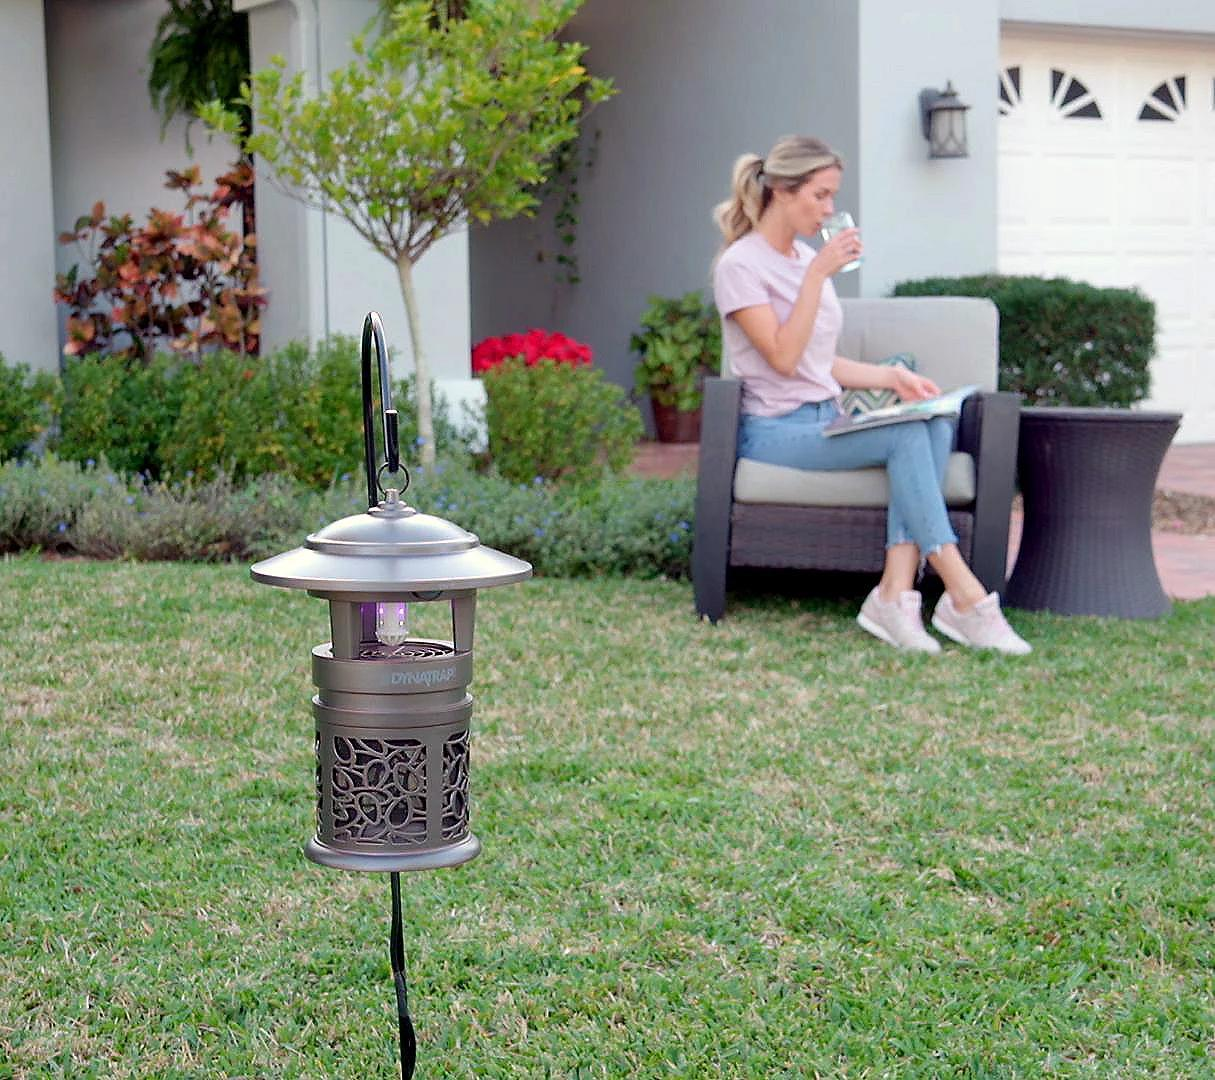 With the DynaTrap on duty, she'll never again be tortured by biting insects. Now if only someone would show her how to sit in that chair... (Photo: QVC)